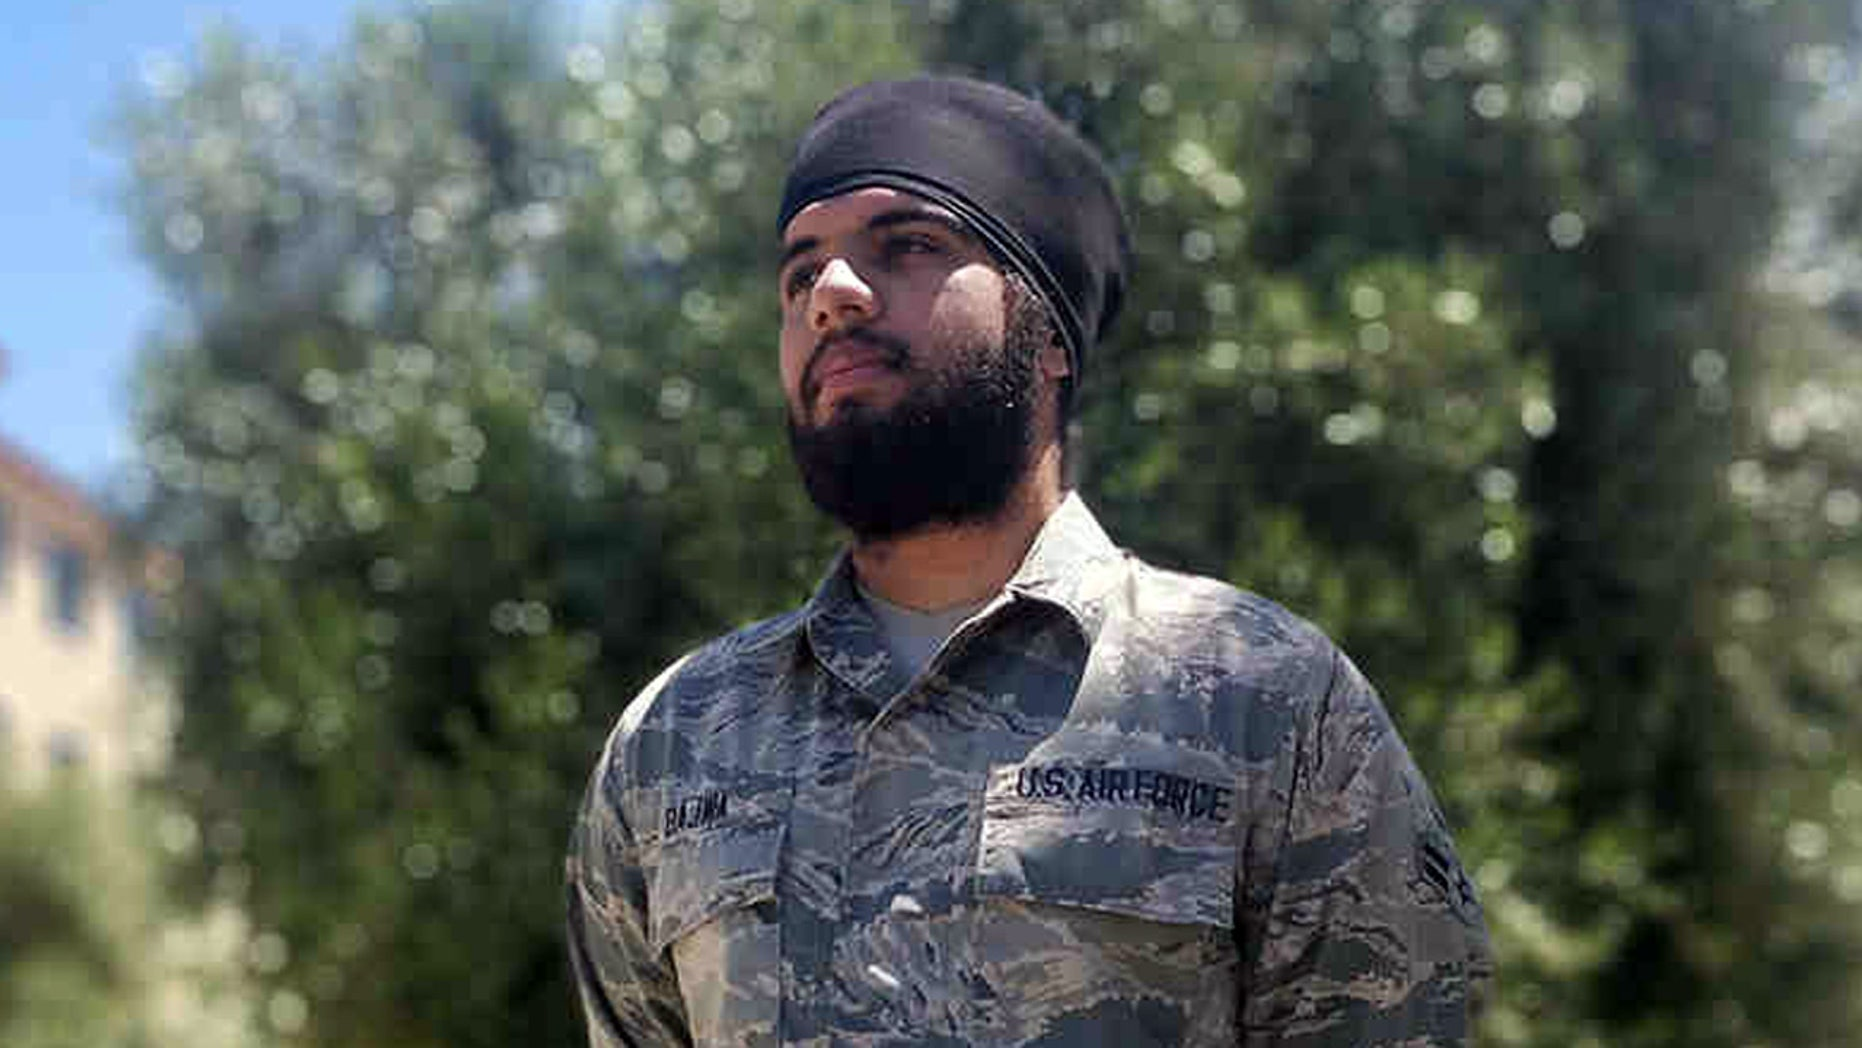 Airman 1st Class Harpreetinder Singh Bajwa was granted a historic religious accommodation by the Air Force allowing him to wear a turban, beard, and unshorn hair in keeping with his Sikh faith.